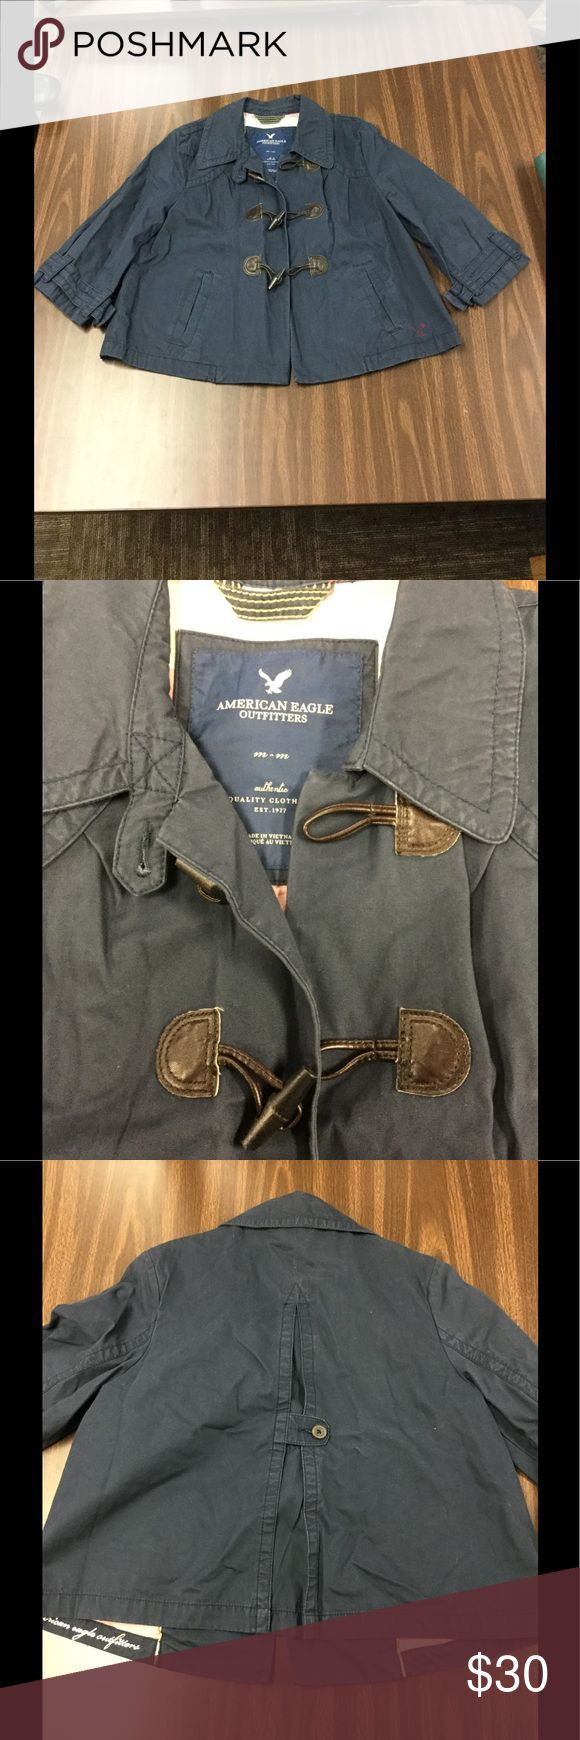 Cool Formal Dress Outfit American Eagle Outfitters Navy Jacket American Eagle navy jacket in size medium.... Check more at http://24store.cf/fashion/formal-dress-outfit-american-eagle-outfitters-navy-jacket-american-eagle-navy-jacket-in-size-medium/